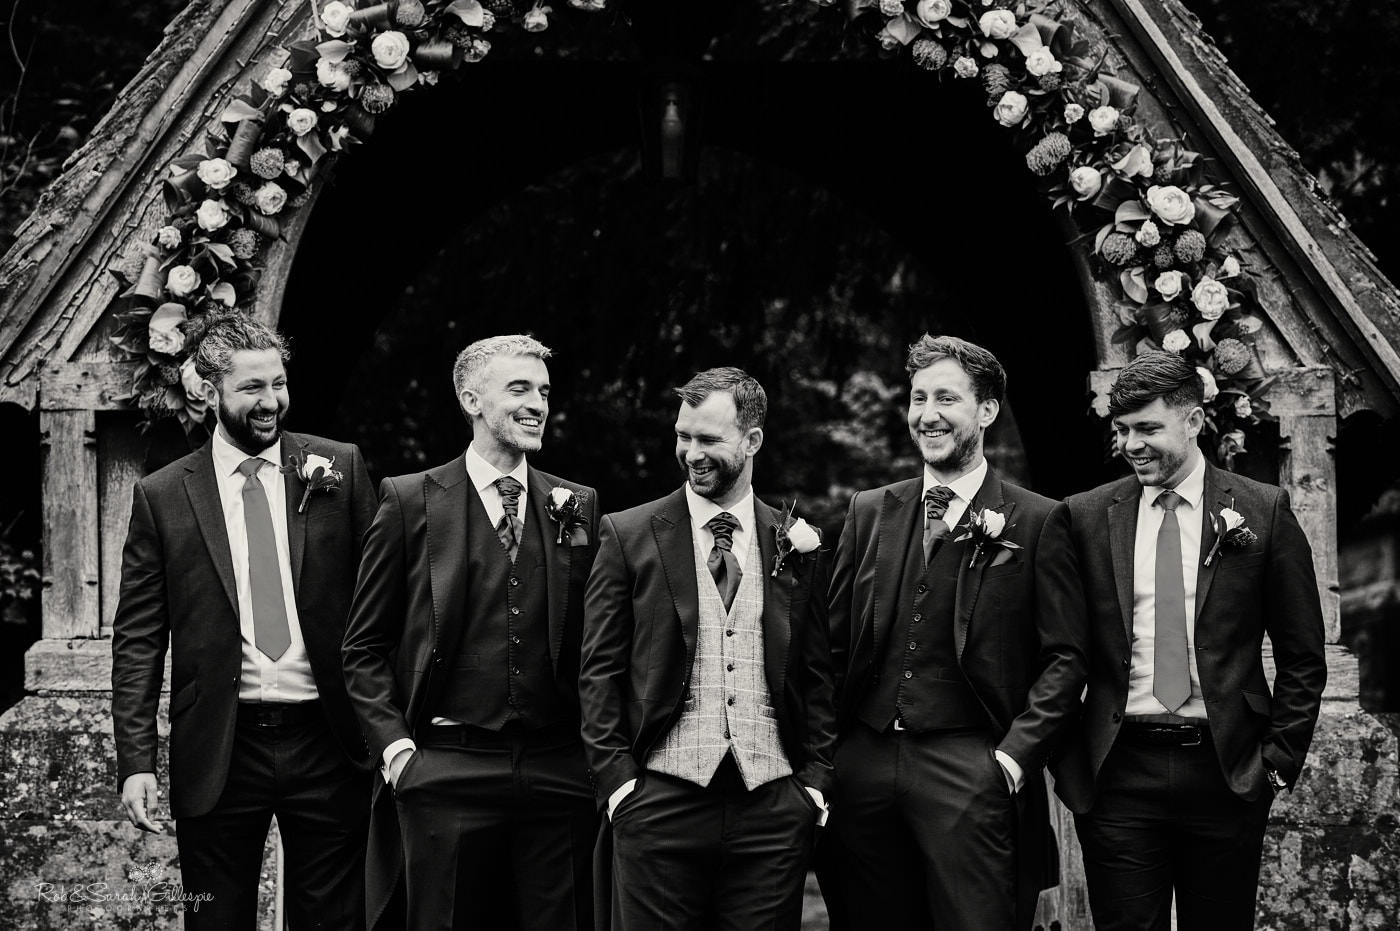 Group photo of groomsmen at St Peter's Pedmore wedding